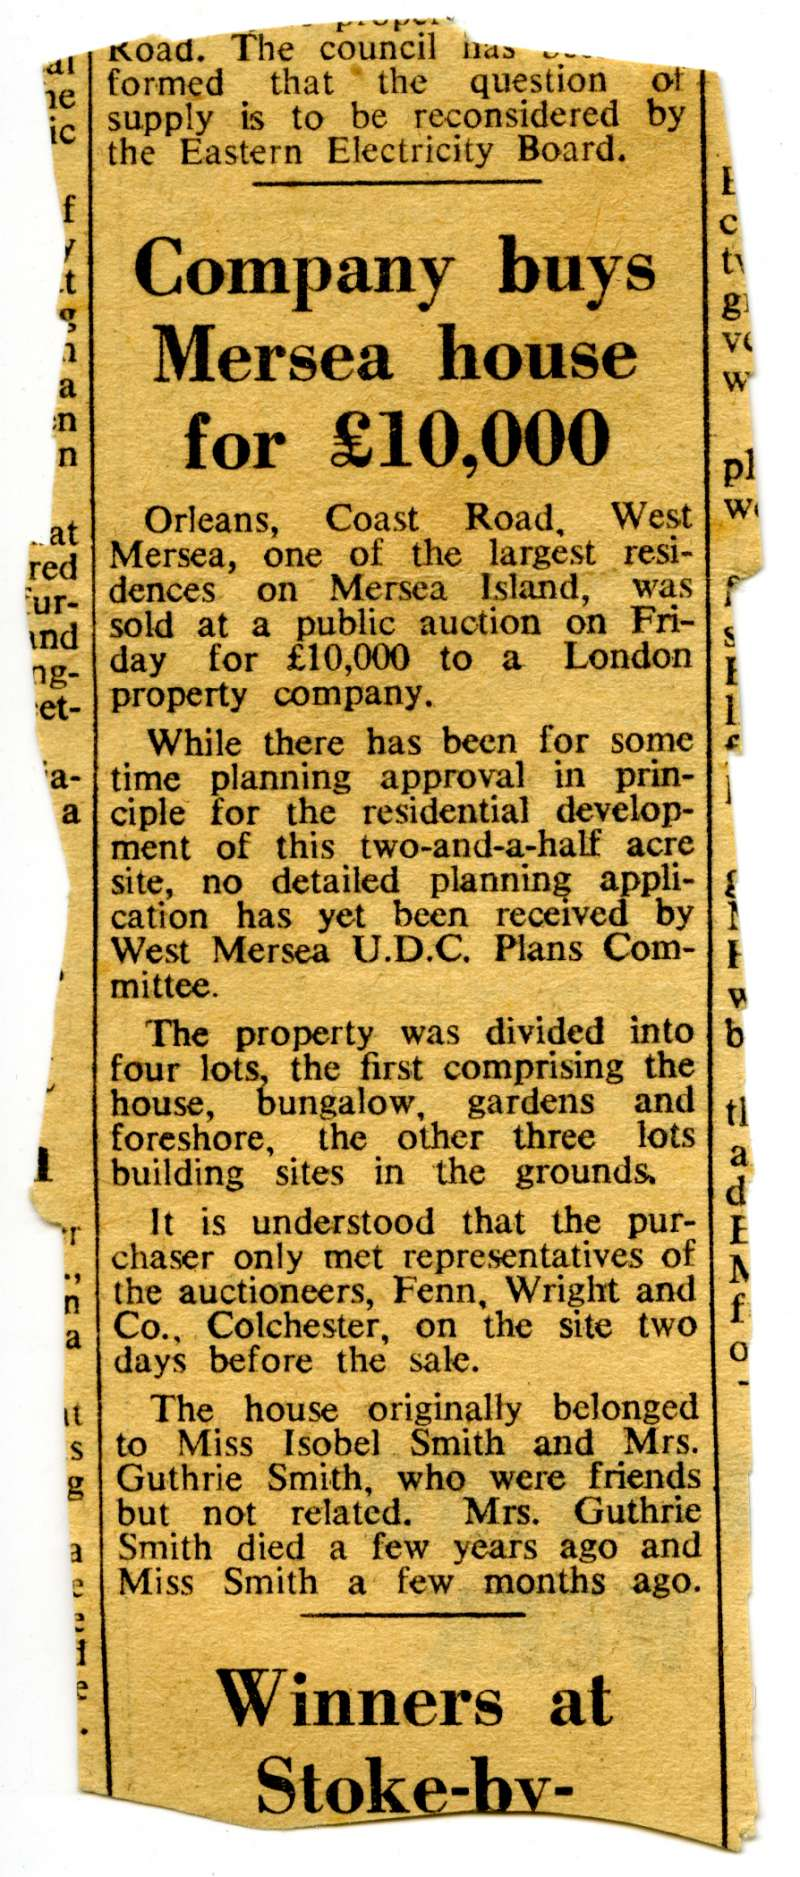 Company buys Mersea House for £10,000. 